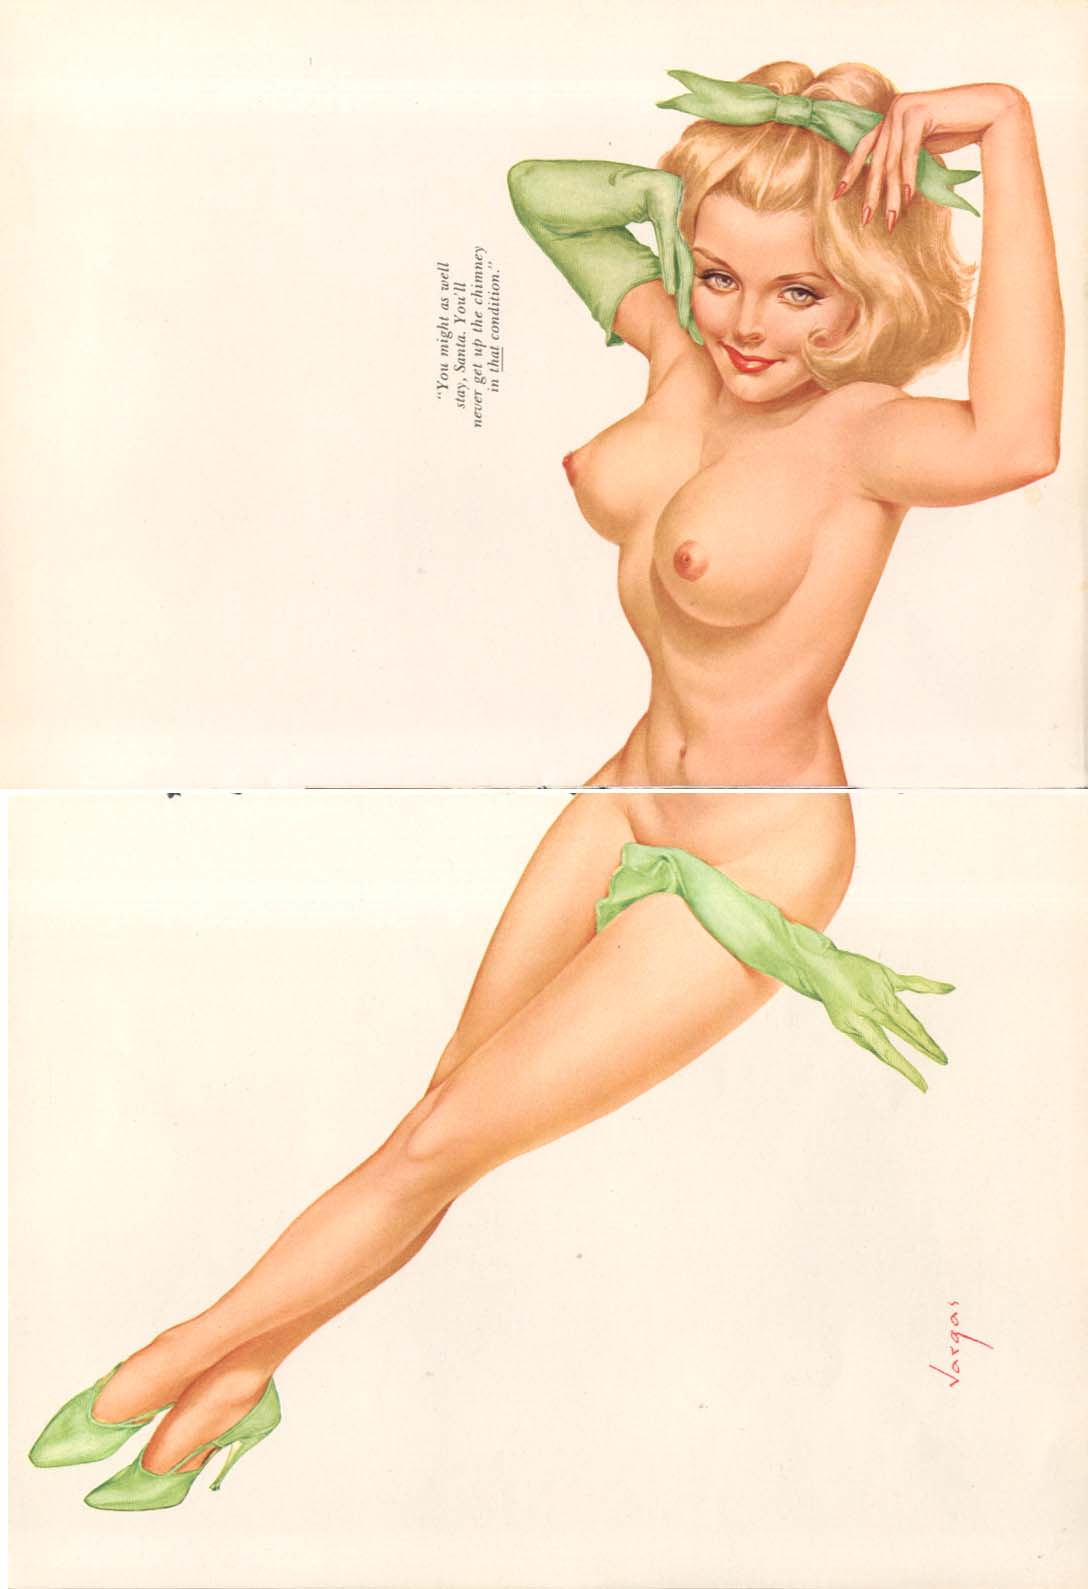 Image for You'll never get up chimney that way Vargas pinup 1968